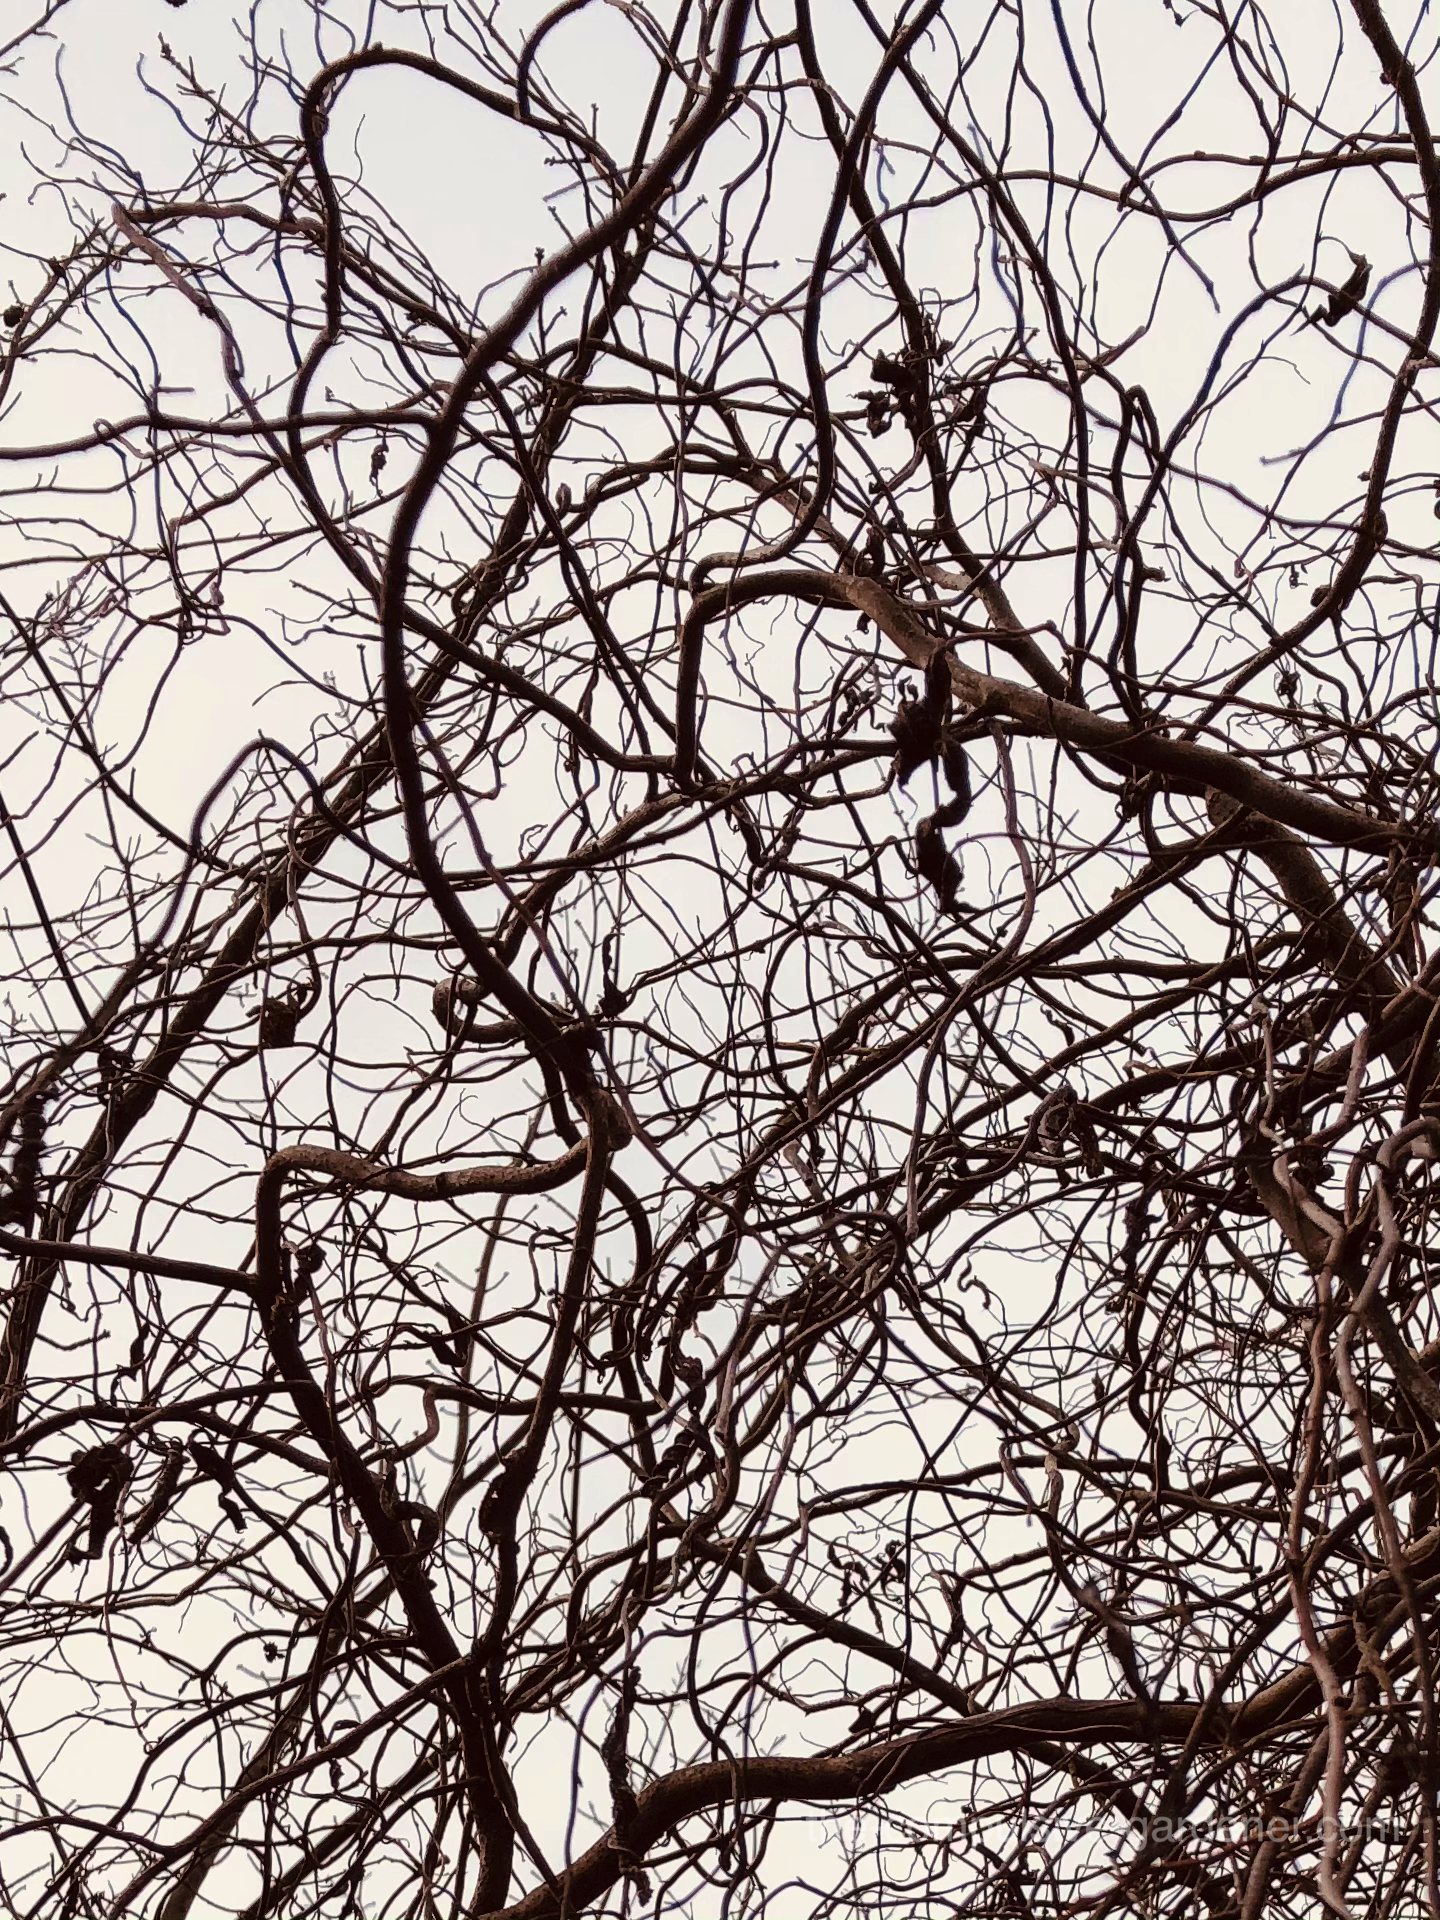 Curly Willow branches in winter